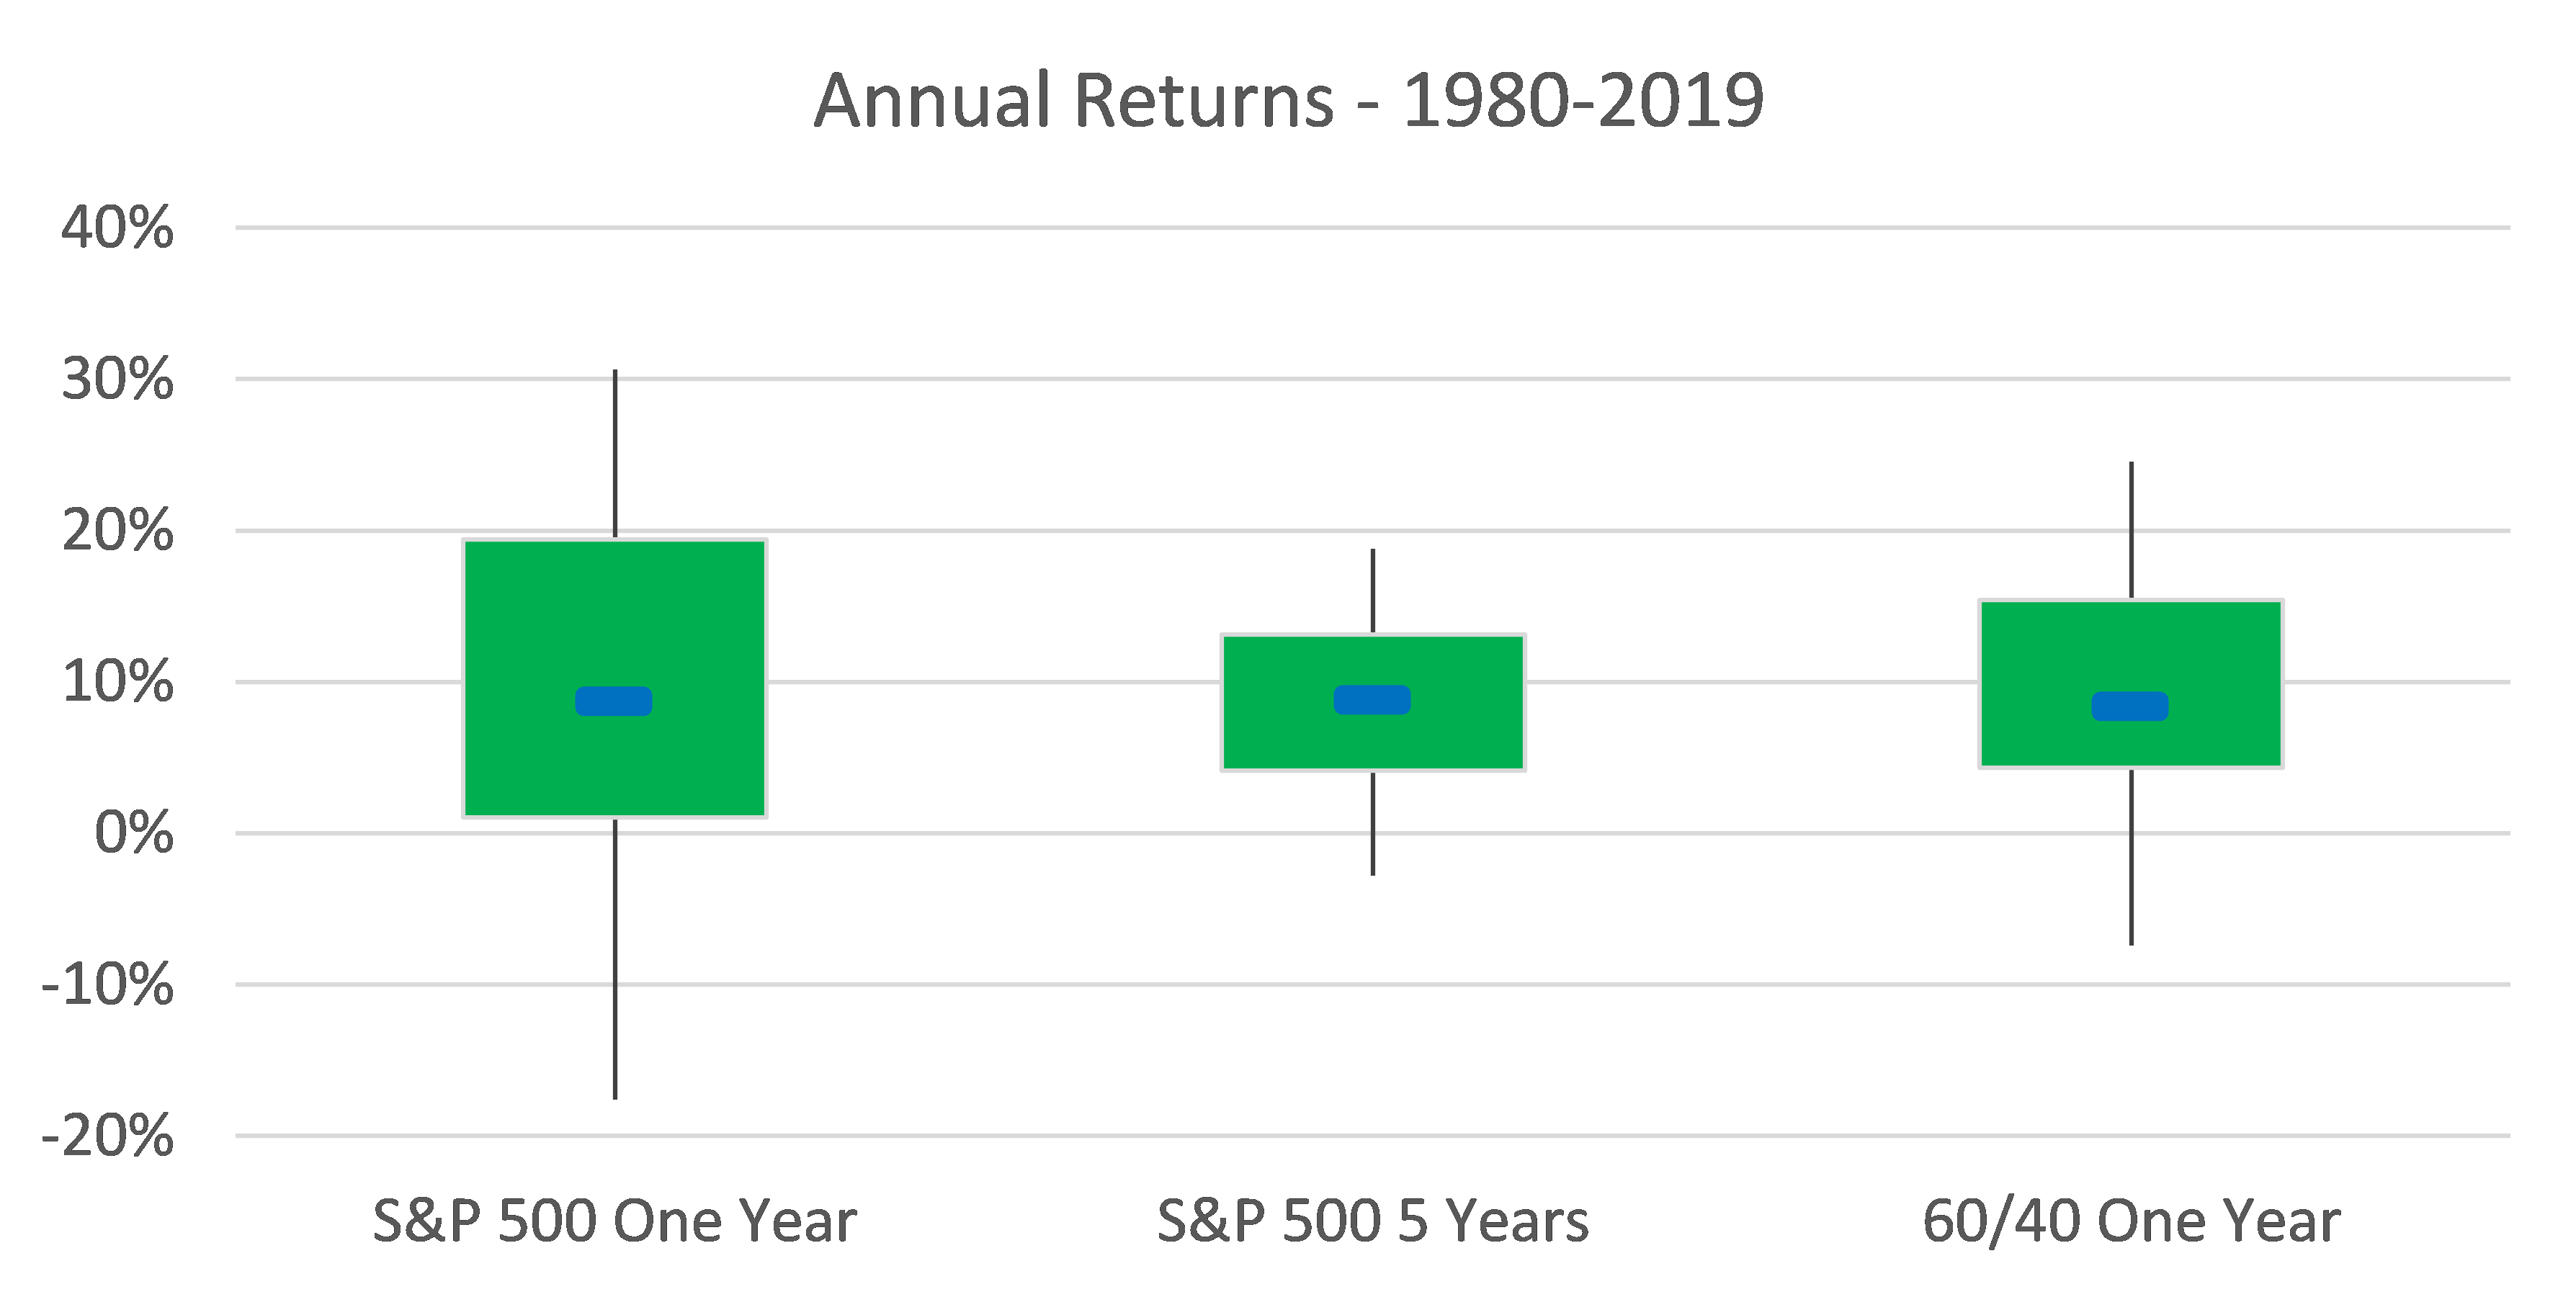 Annual Returns - 1980-2019 - Time vs. Rebalance